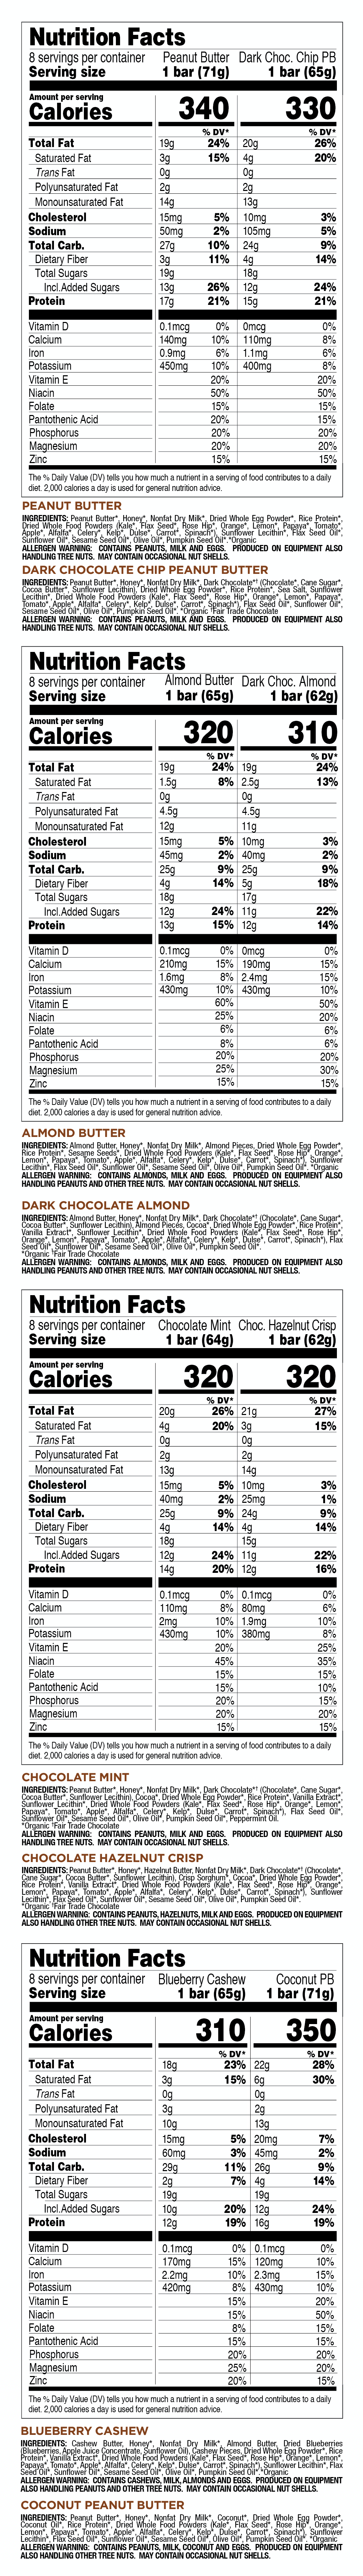 Variety Pack nutritional information